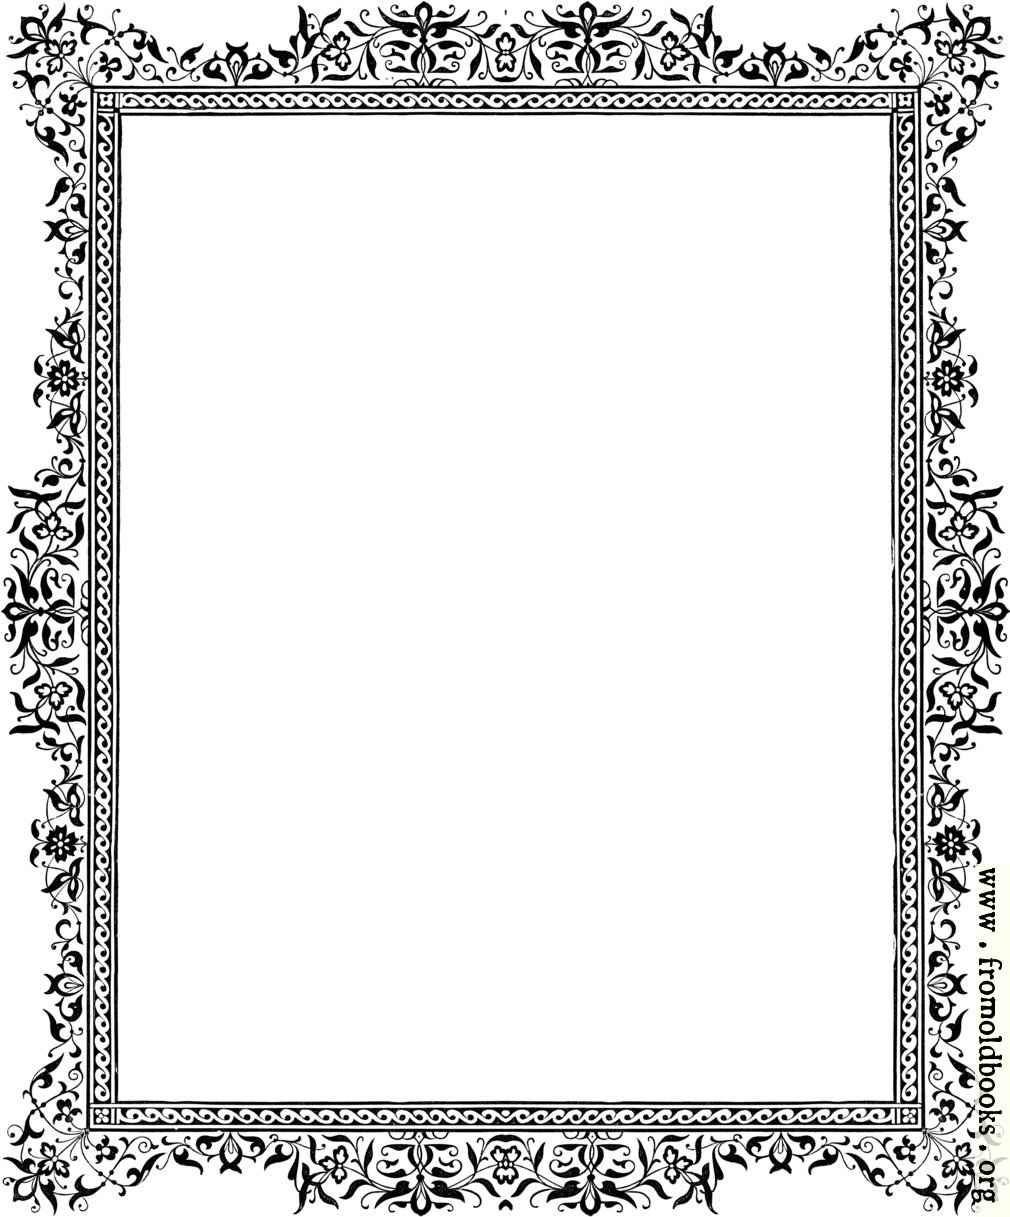 Decorative clip-art Victorian border, Black and White ... | 1010 x 1217 jpeg 187kB